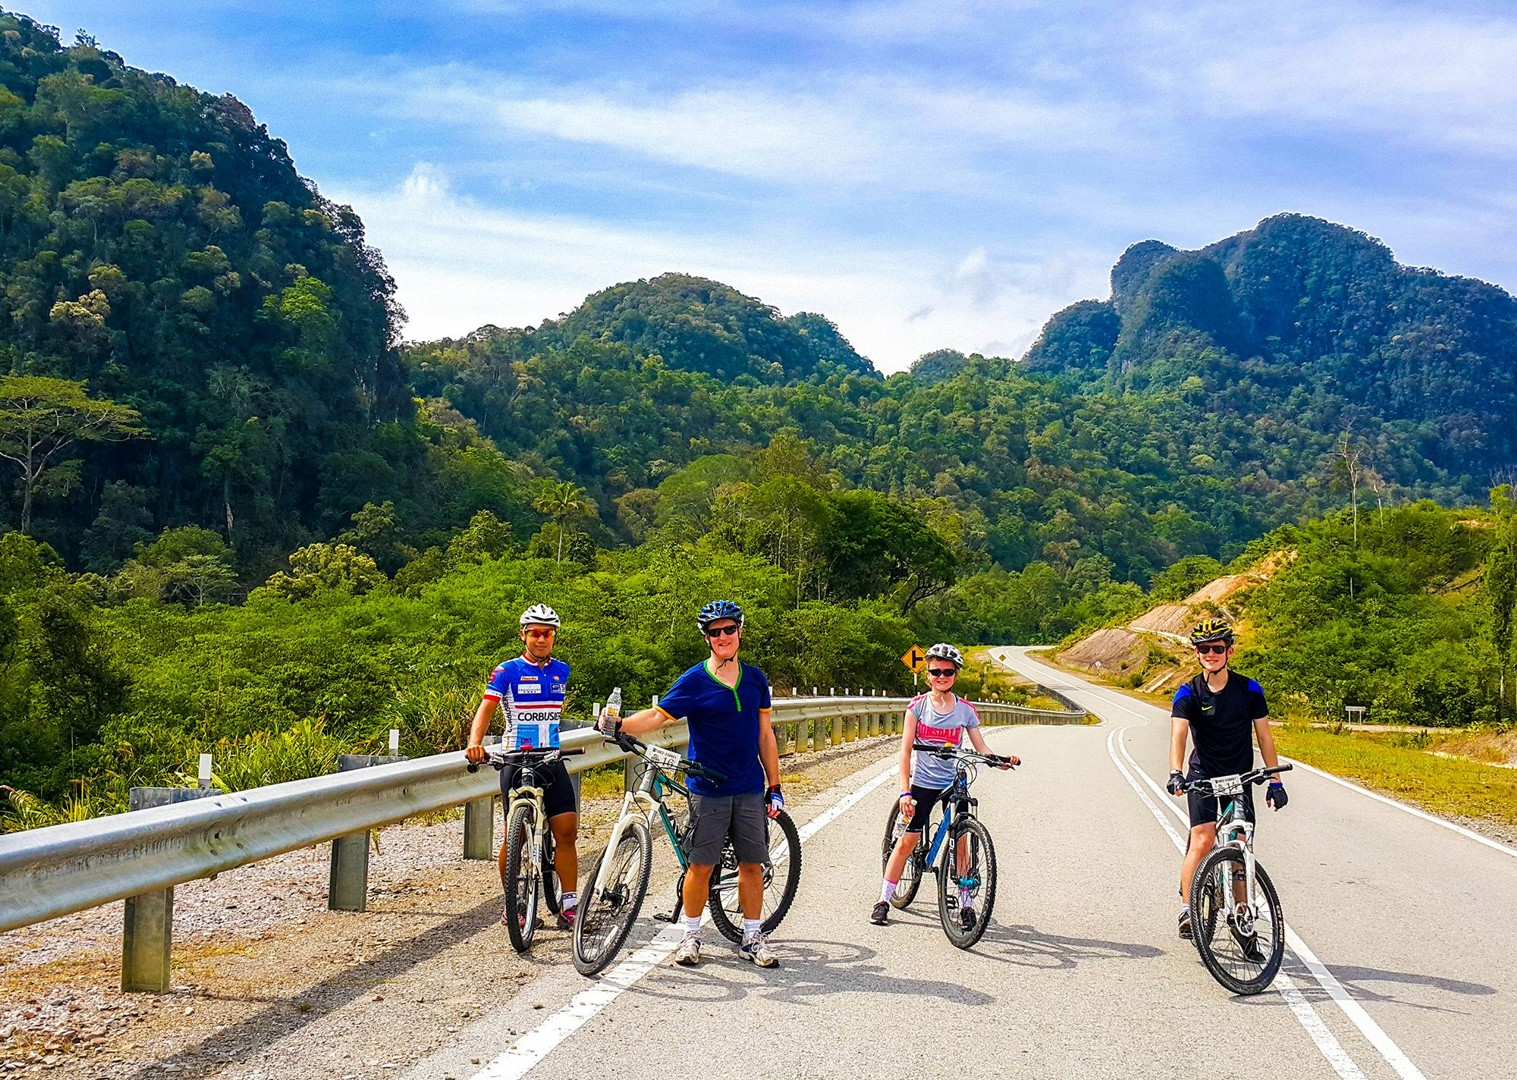 group-cycling-family-guided-holiday-in-borneo-saddle-skedaddle.jpg - NEW! Borneo - Sarawak Jungle Adventures - Family Cycling